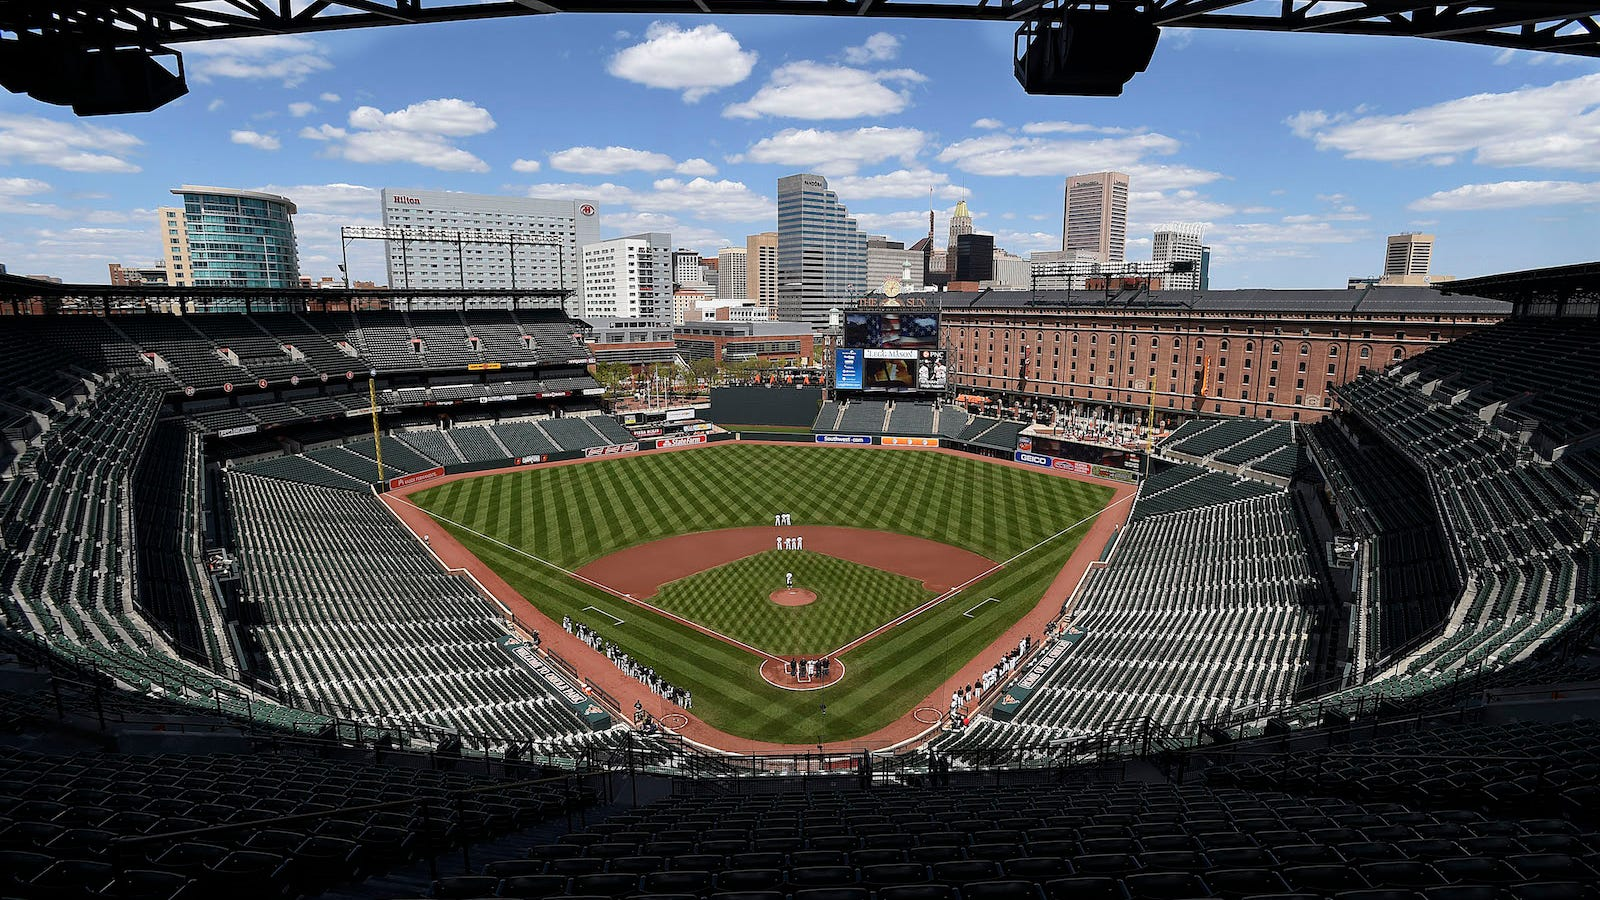 Photos An Empty Stadium In Baltimore Hosts A Mlb Baseball